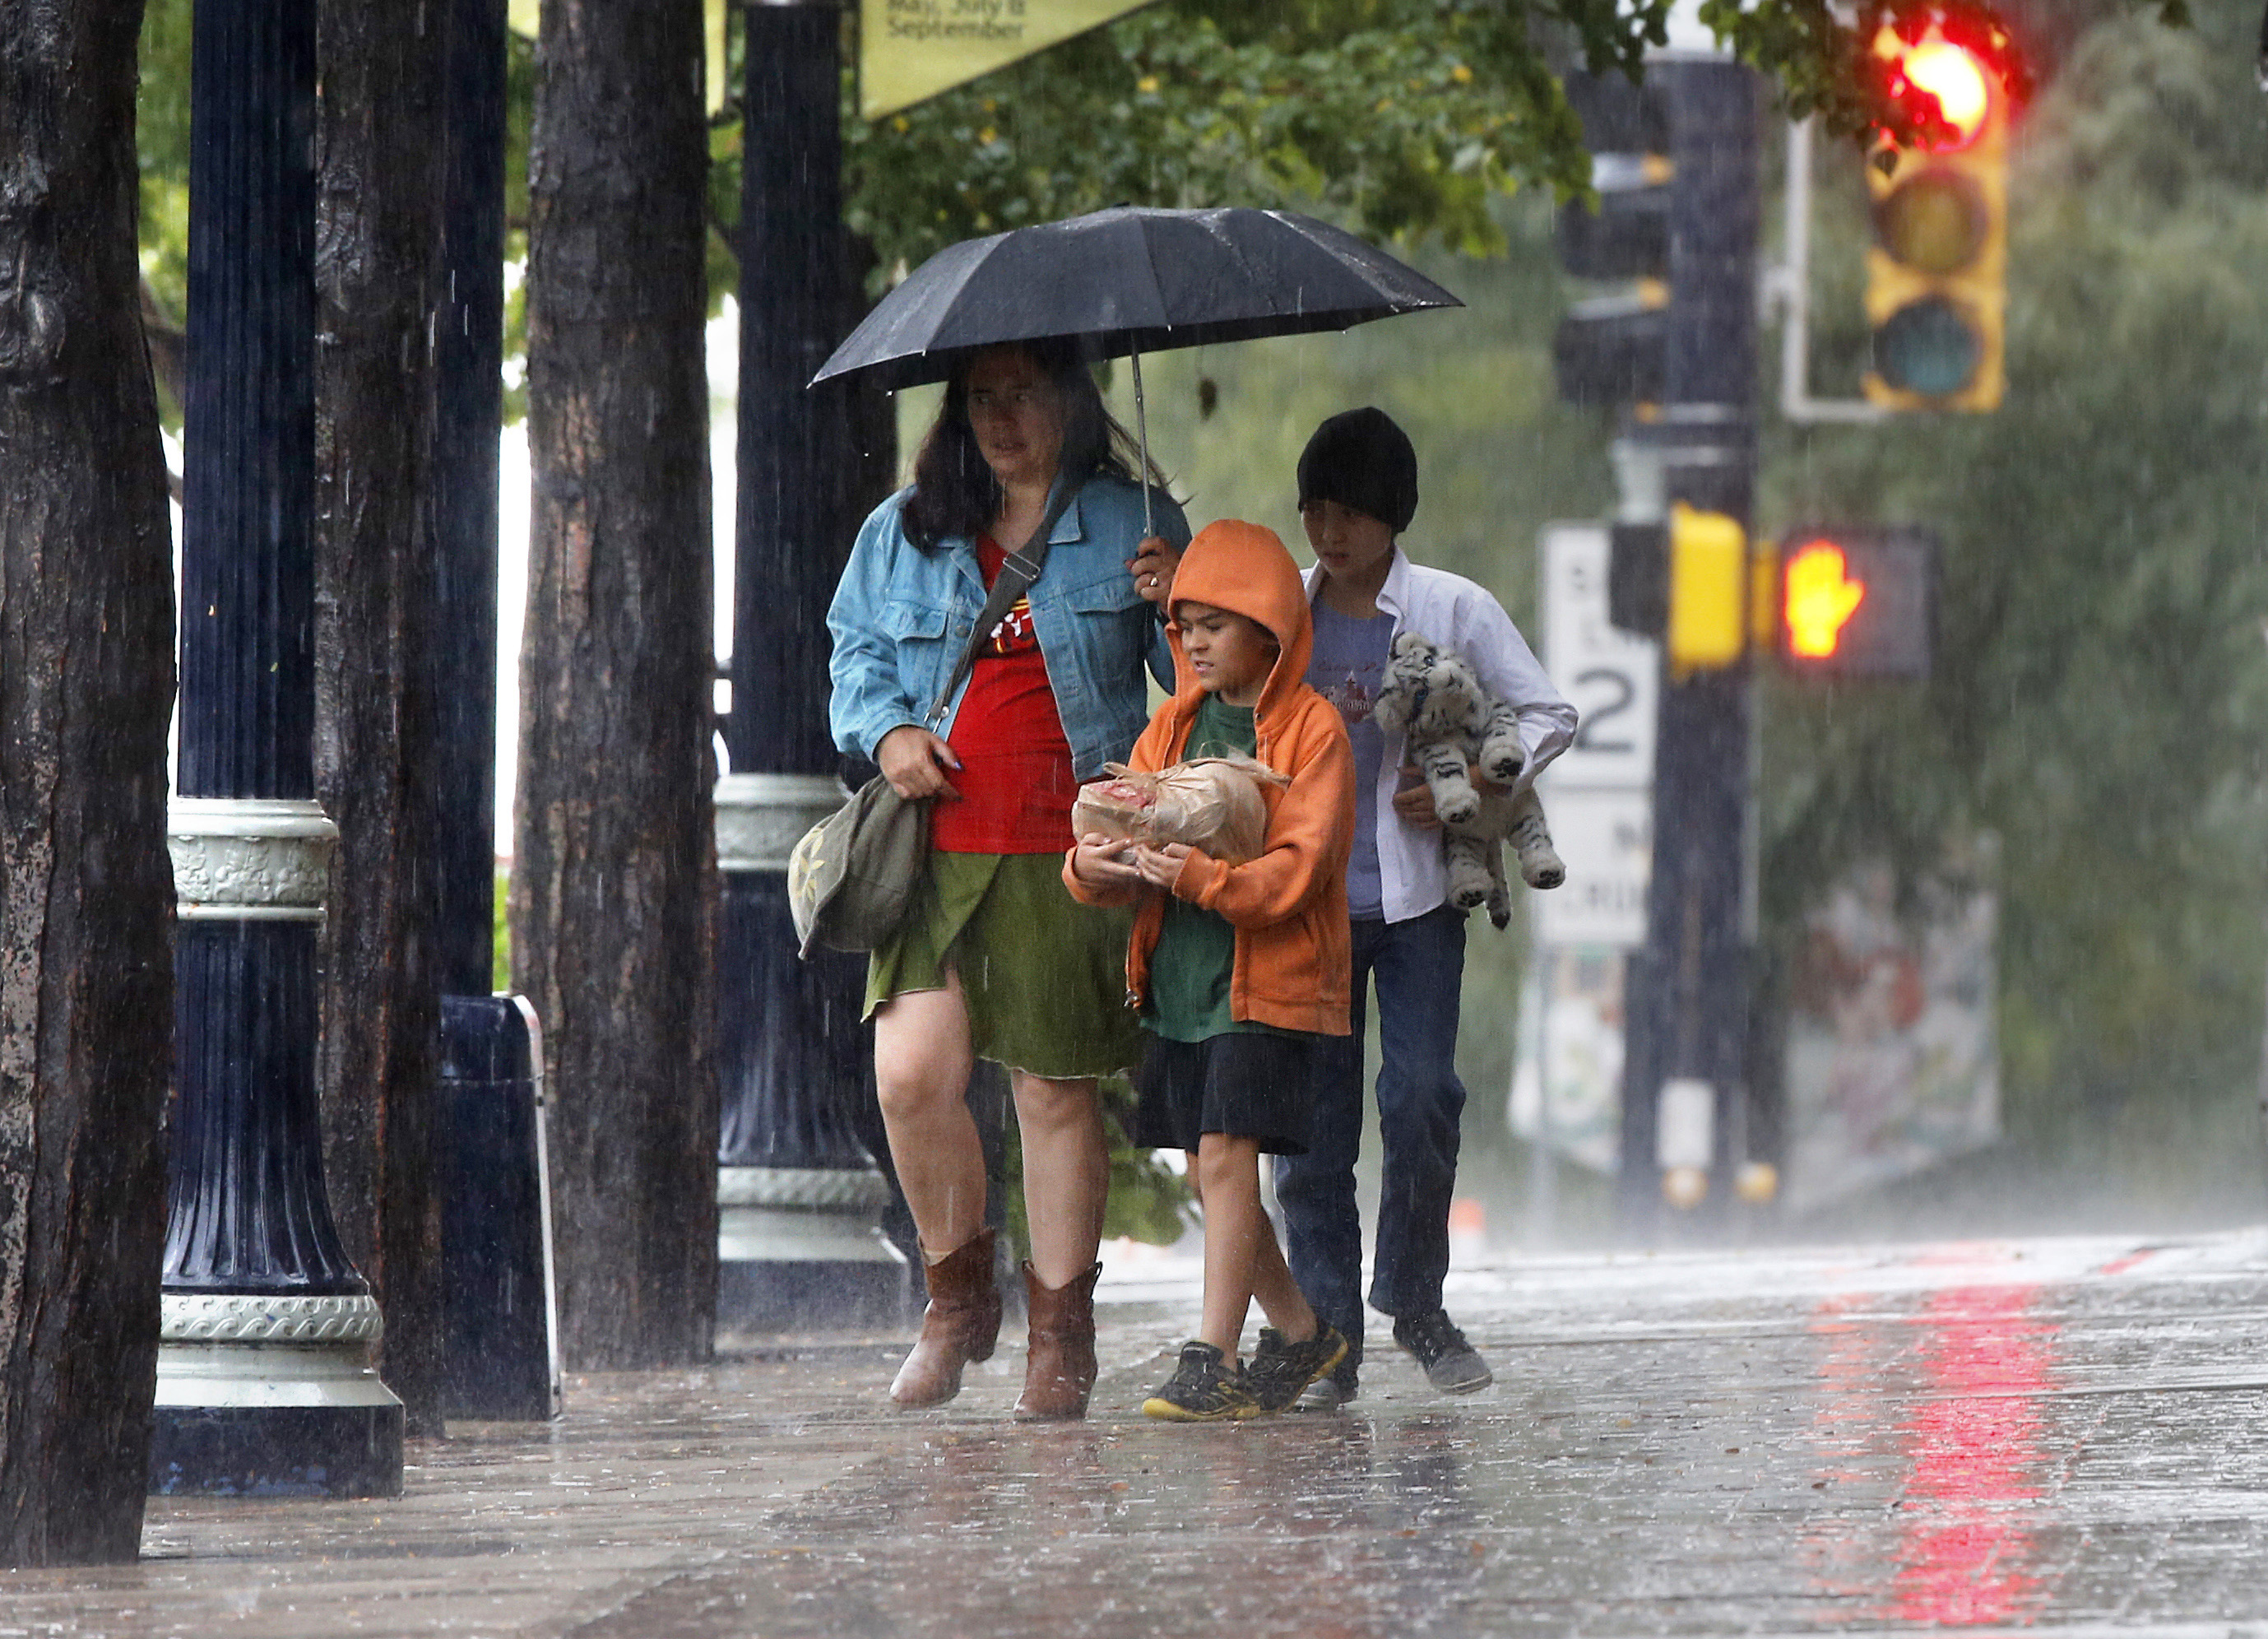 Photo: Walking in rain in September 2013 (AP Photo)